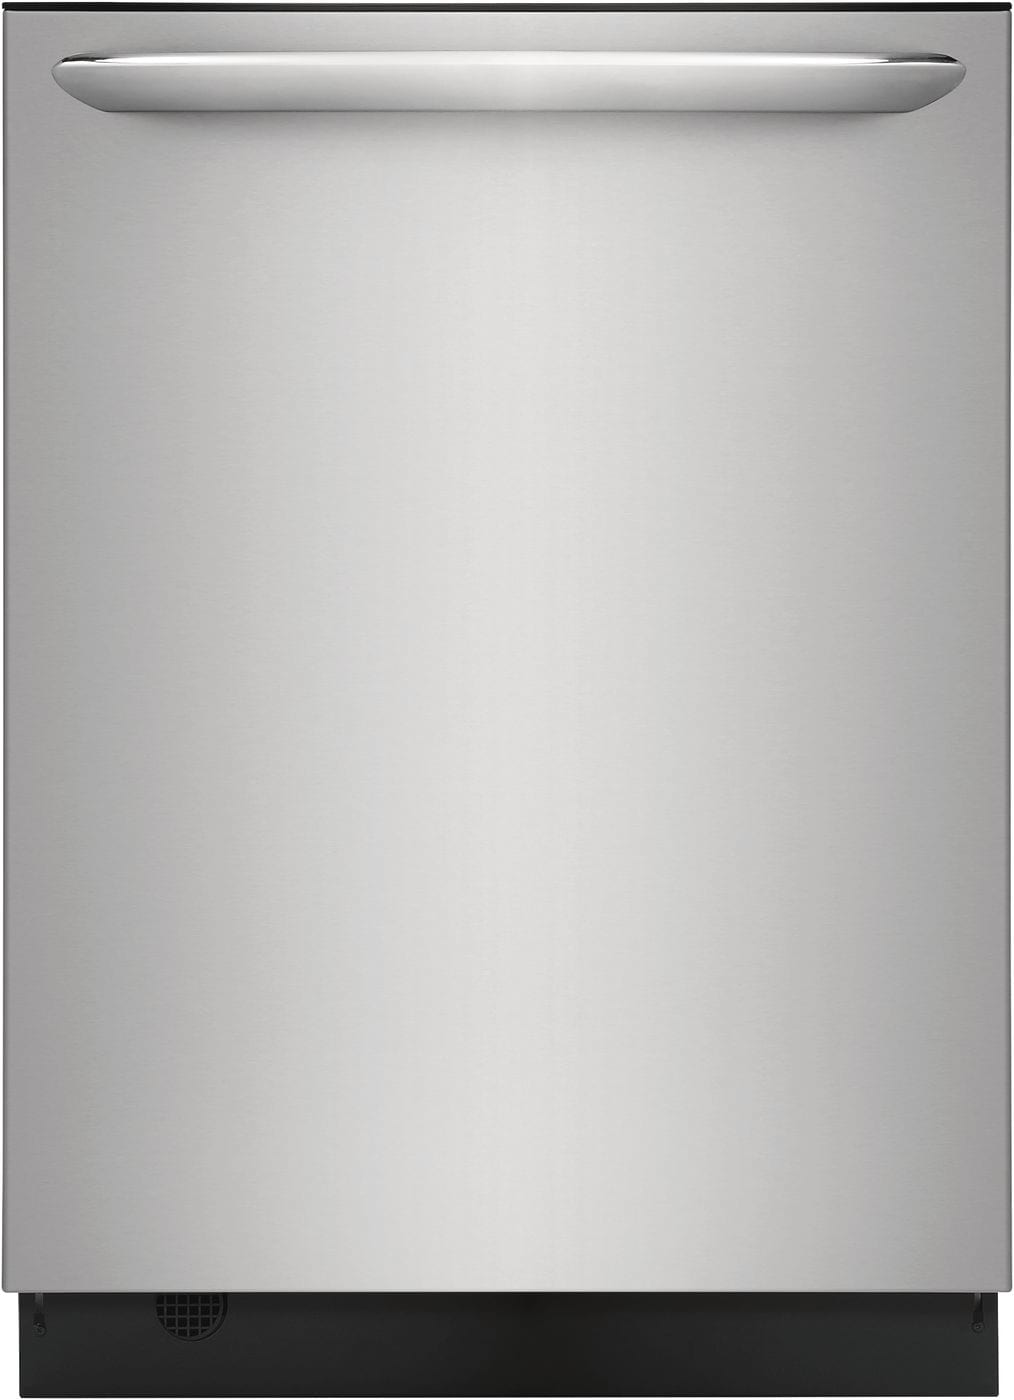 "Frigidaire Gallery 24"" Built-In Dishwasher with Dual OrbitClean® Wash System"